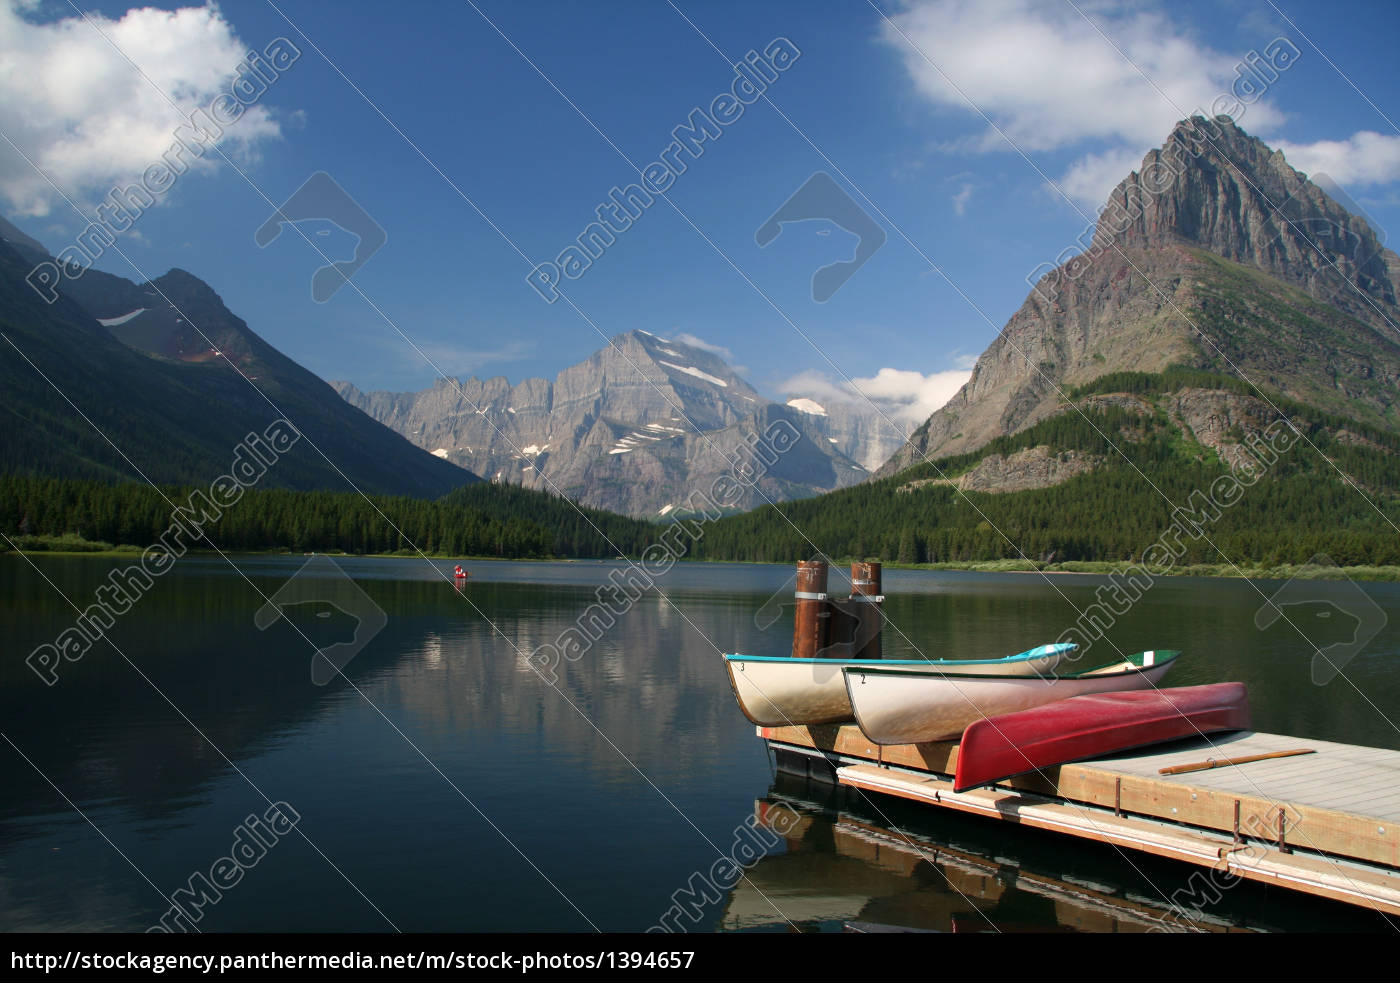 lakeside, kayaks - 1394657